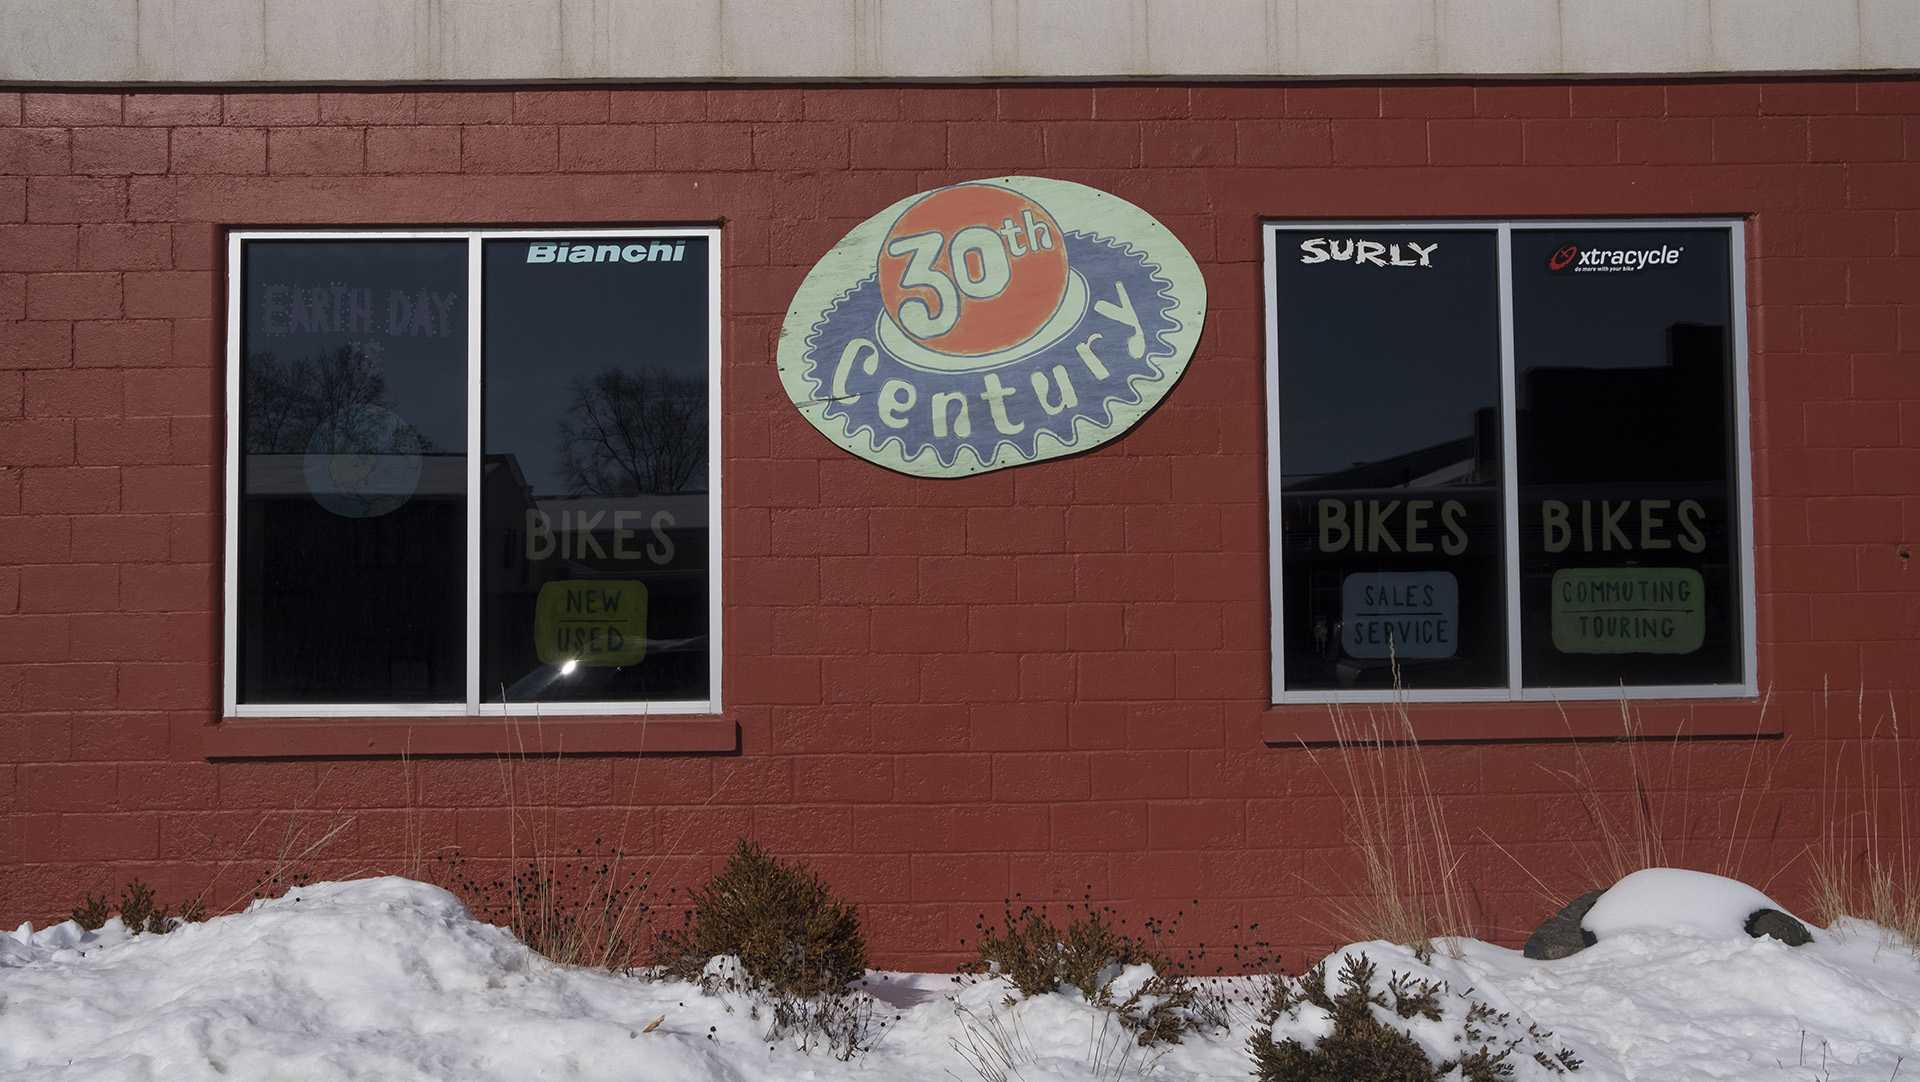 30th Century Bicycle is seen on Tuesday, Feb. 13, 2018. The bike shop announced it was closing on Valentine's Day earlier this year. (Nick Rohlman/The Daily Iowan)